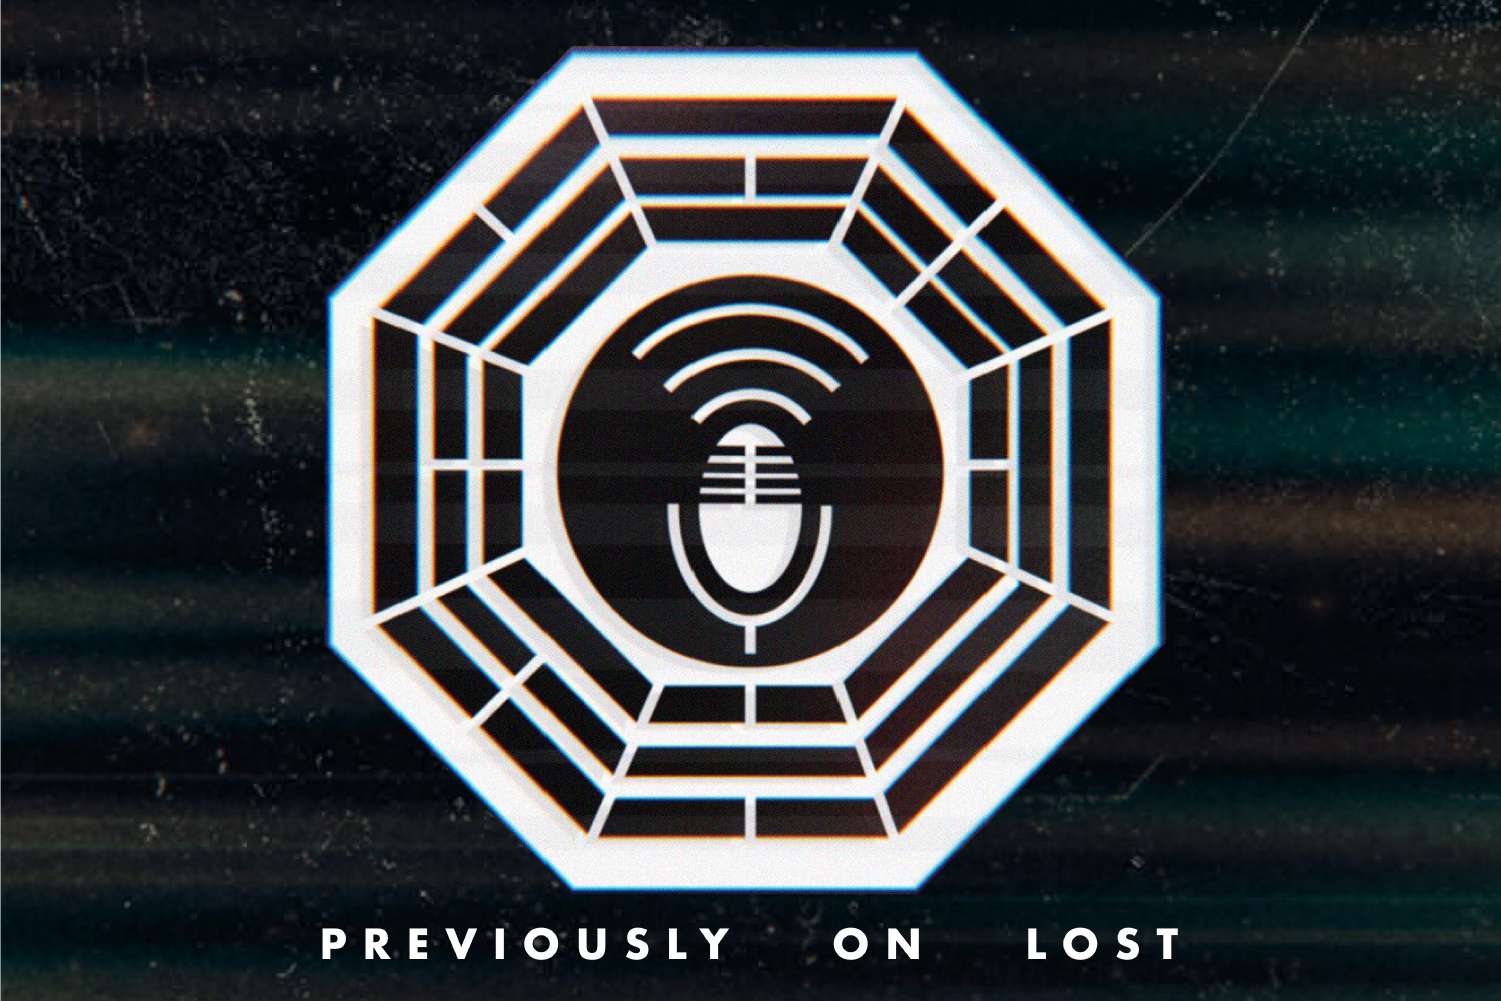 Previously on Lost Logo